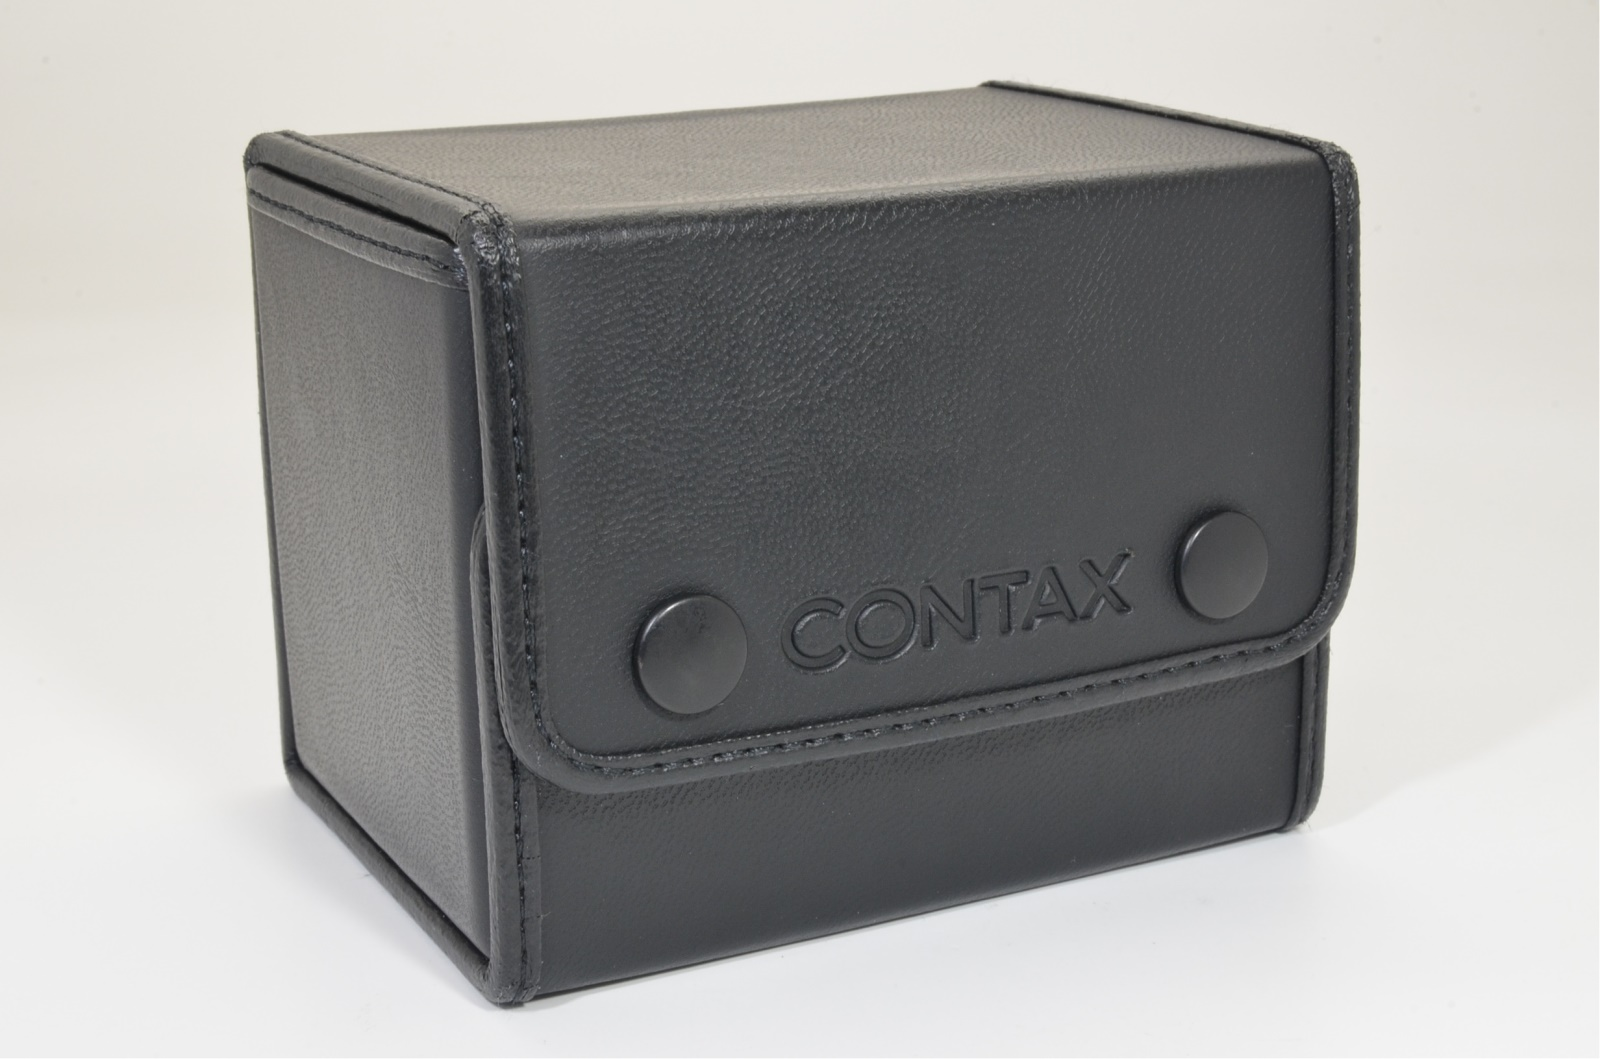 contax carl zeiss t* biogon 21mm f2.8 lens with view finder for g2